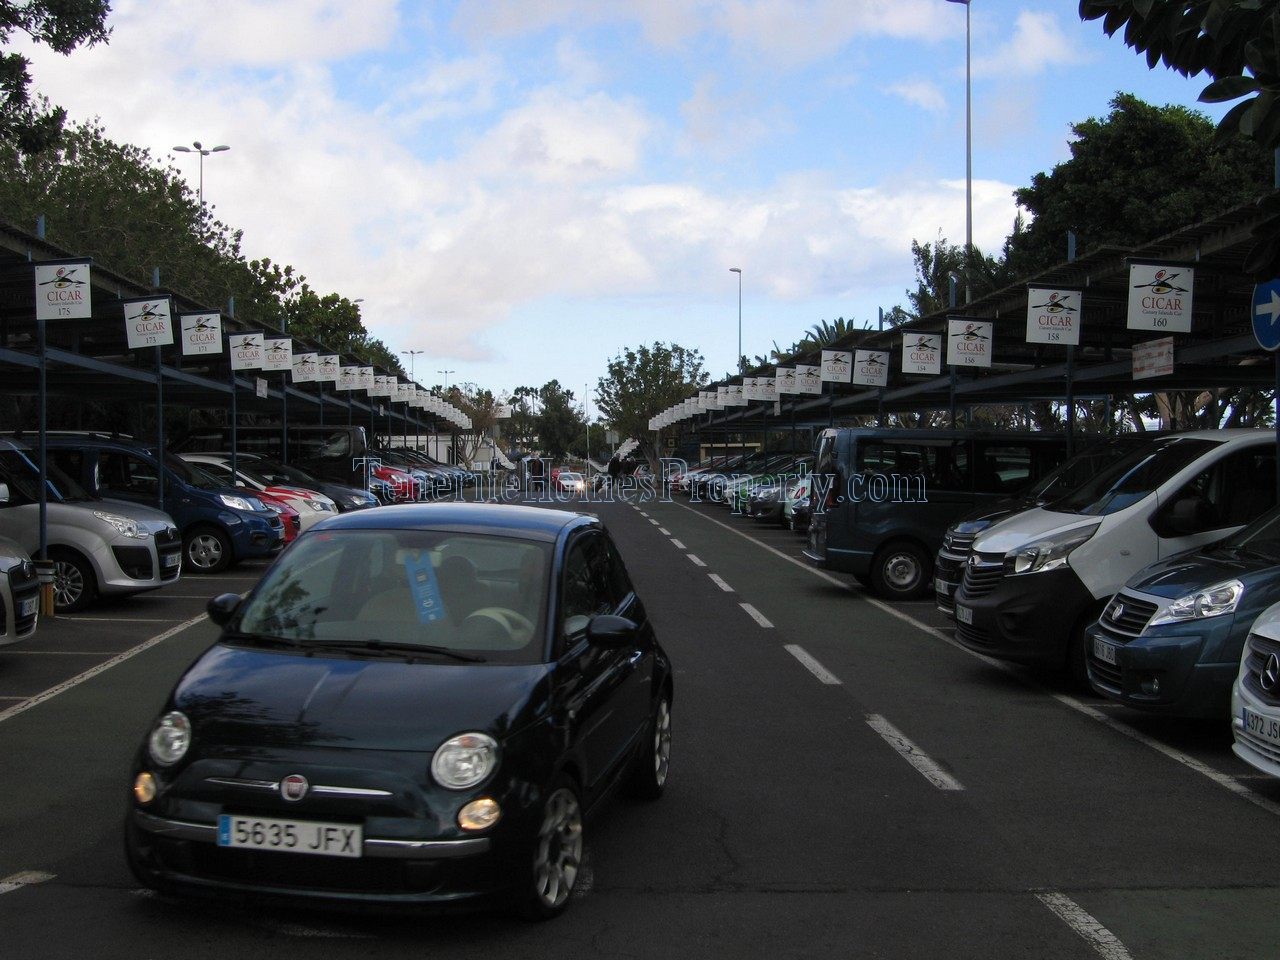 Car hire Tenerife airport south CICAR